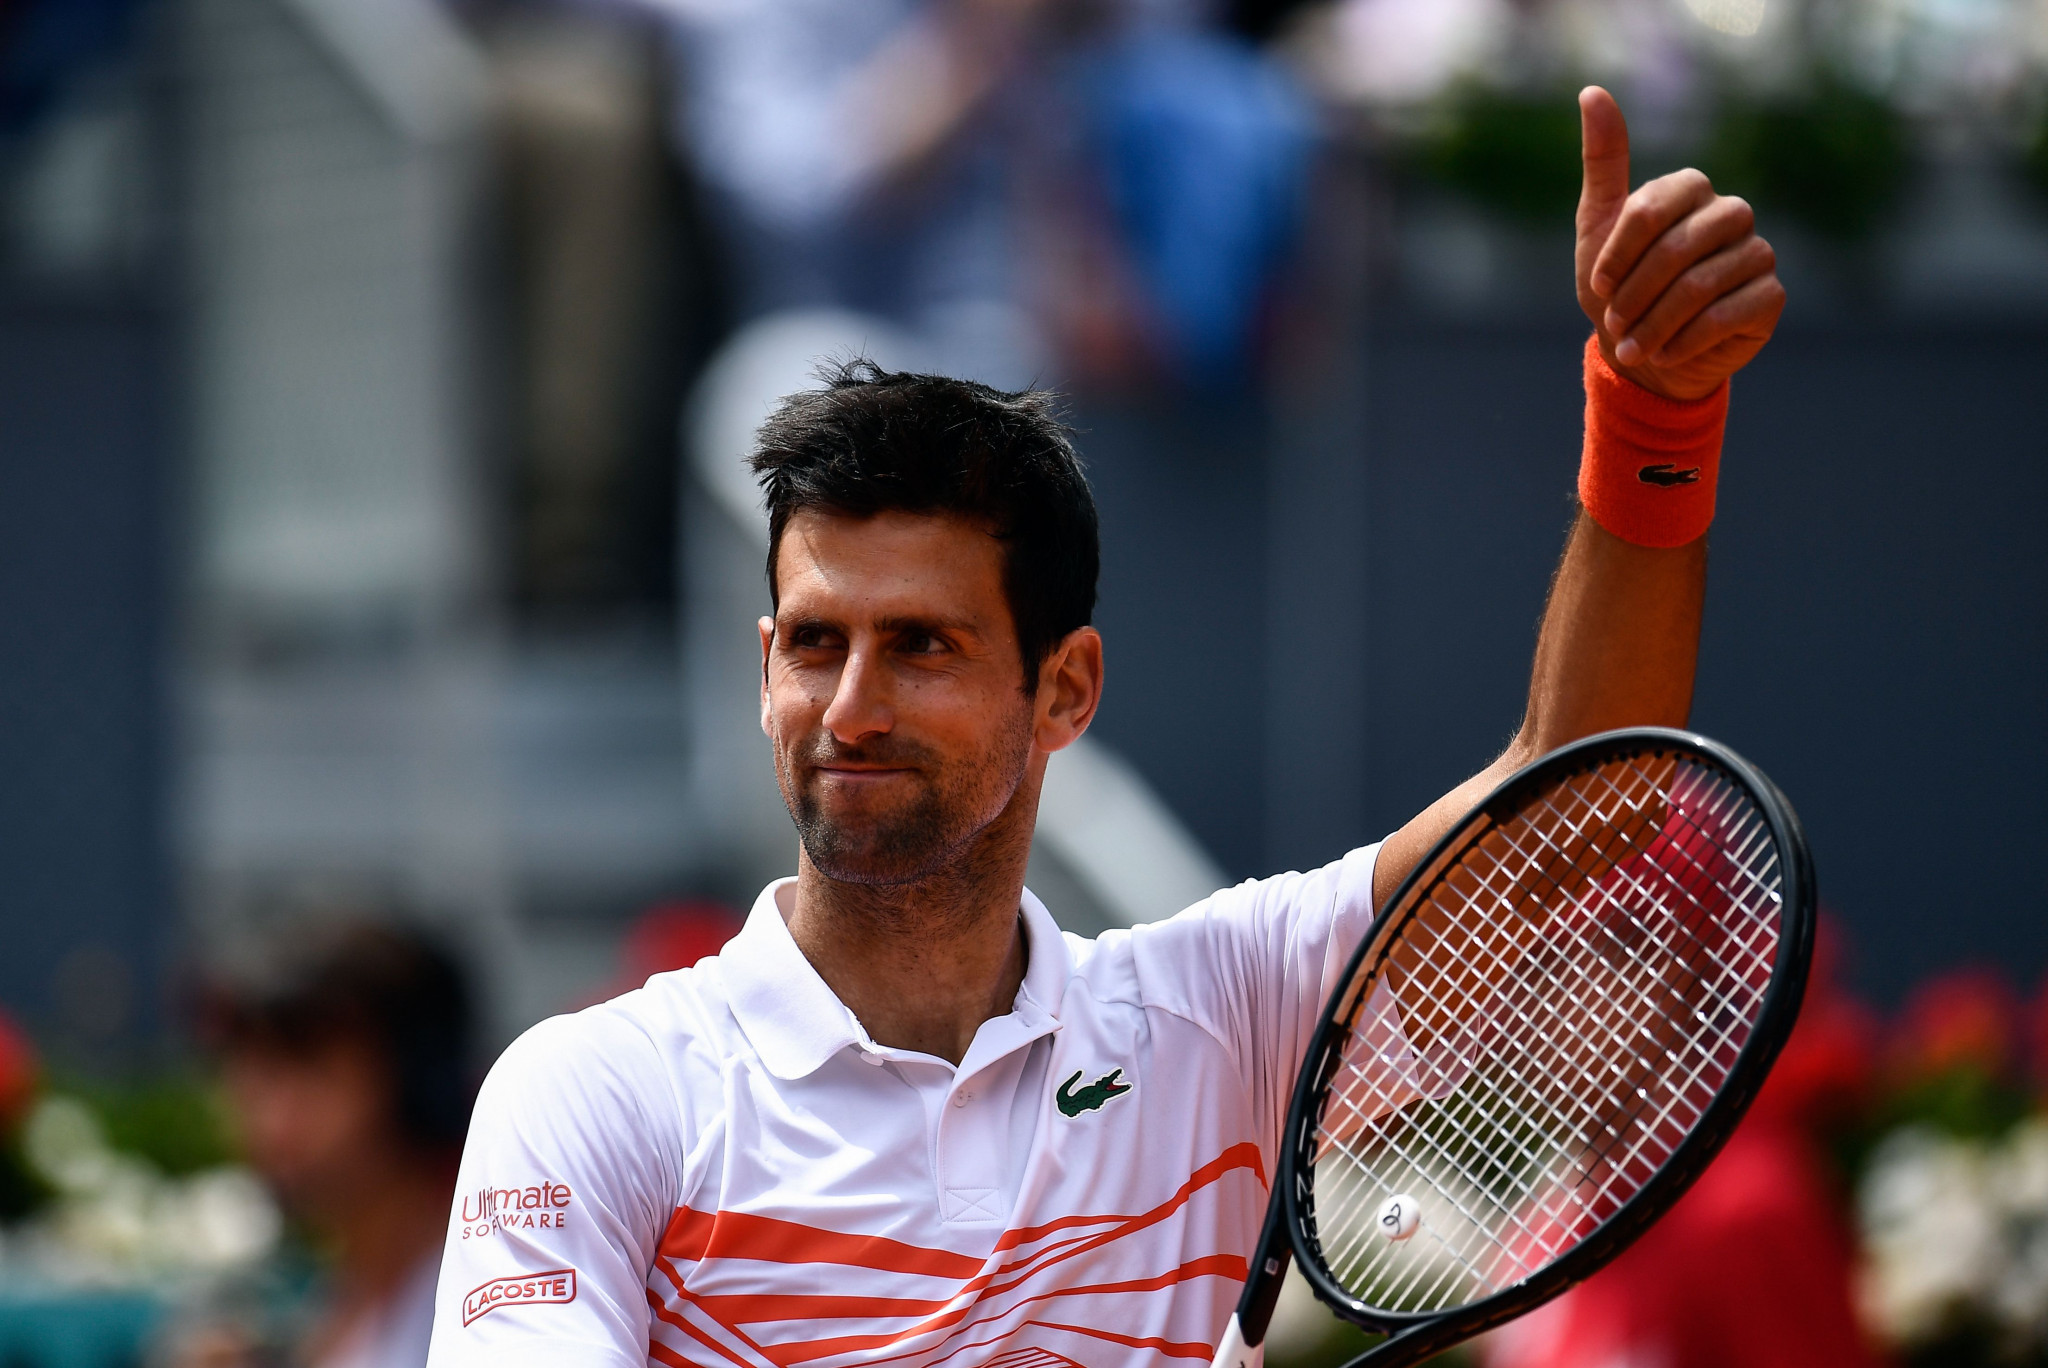 Djokovic downs American Fritz to secure last-16 berth at Madrid Open